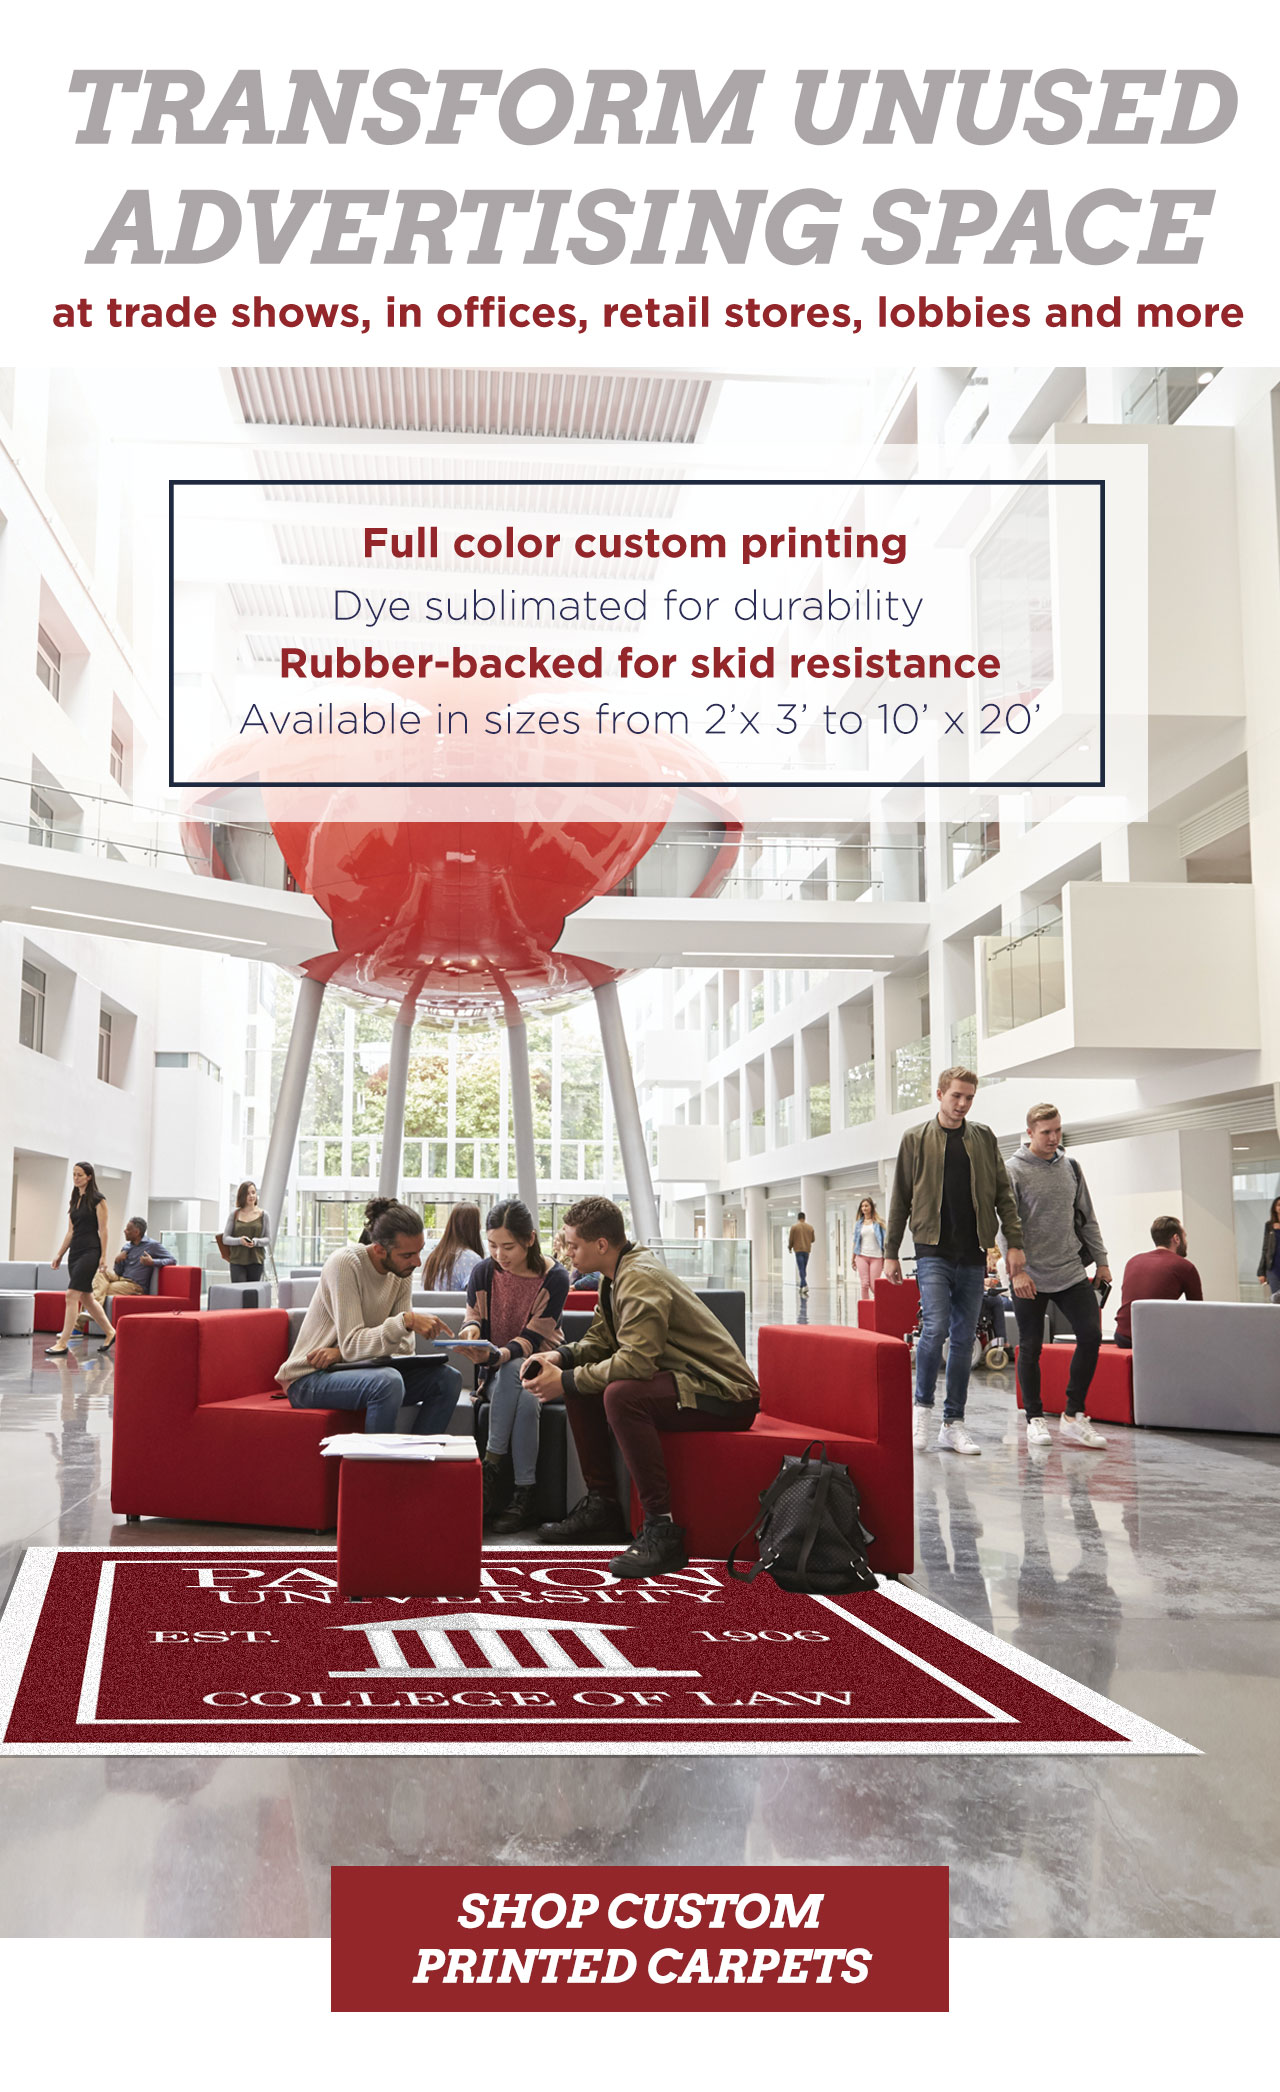 TRANSFORM UNUSED ADVERTISING SPACE  at trade shows, in offices, retail stores, lobbies and more - SHOP CUSTOM PRINTED CARPETS